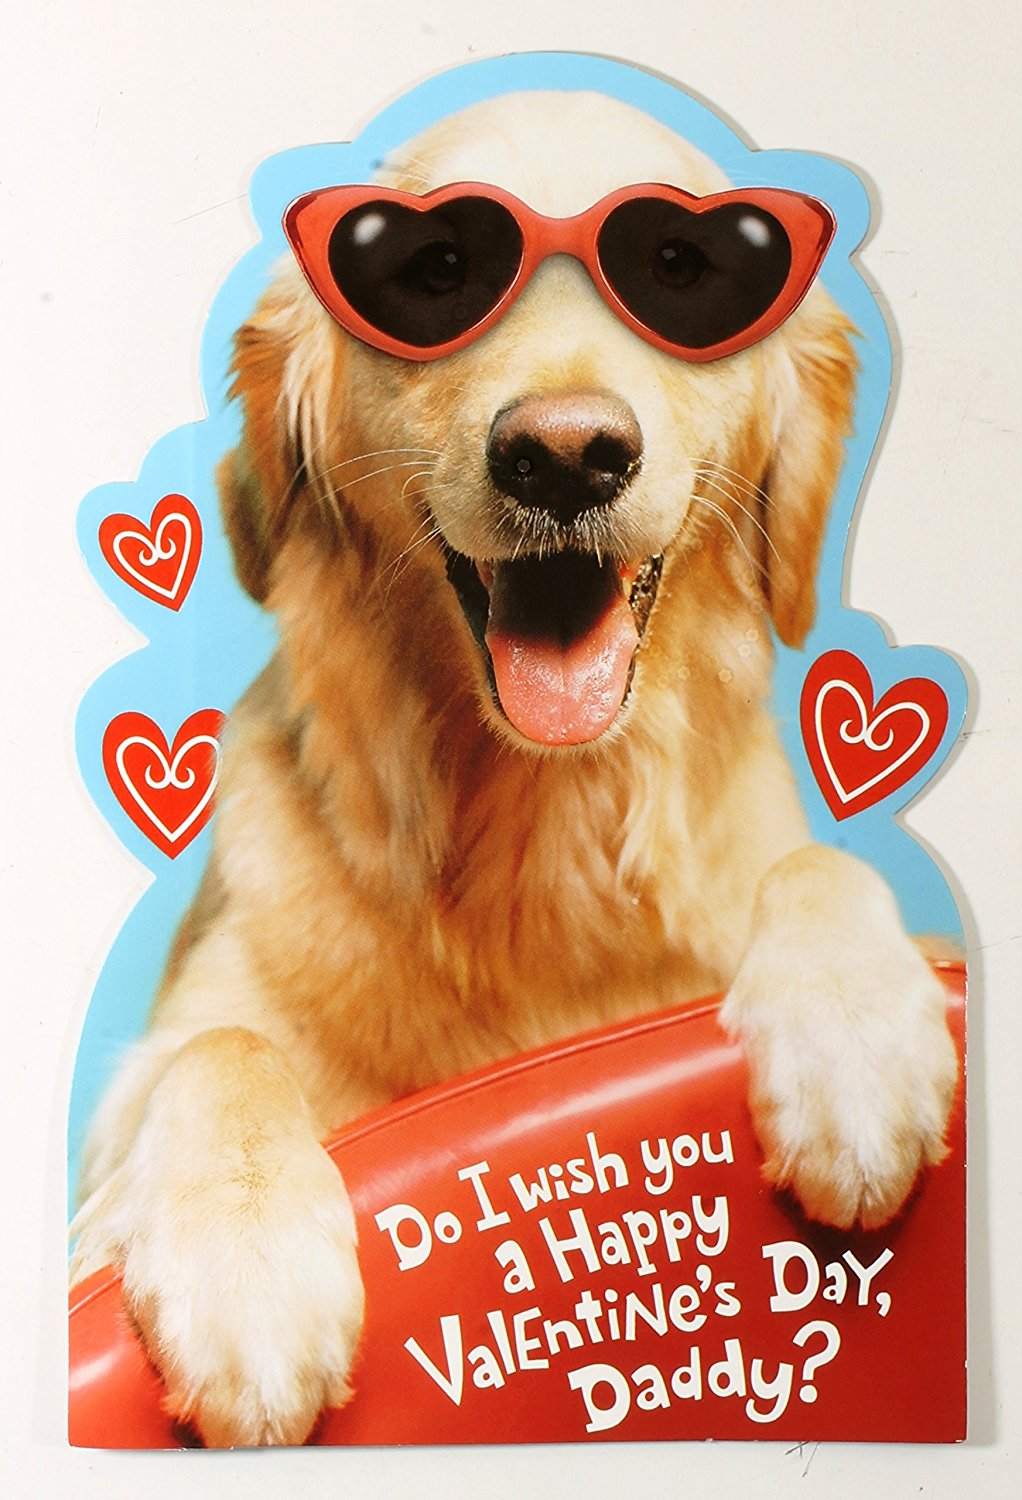 Valentine Card for Daddy from young son (Do I wish you a Happy Valentine's Day, Daddy? (Dog w/sunglasses)) By American Greetings Each